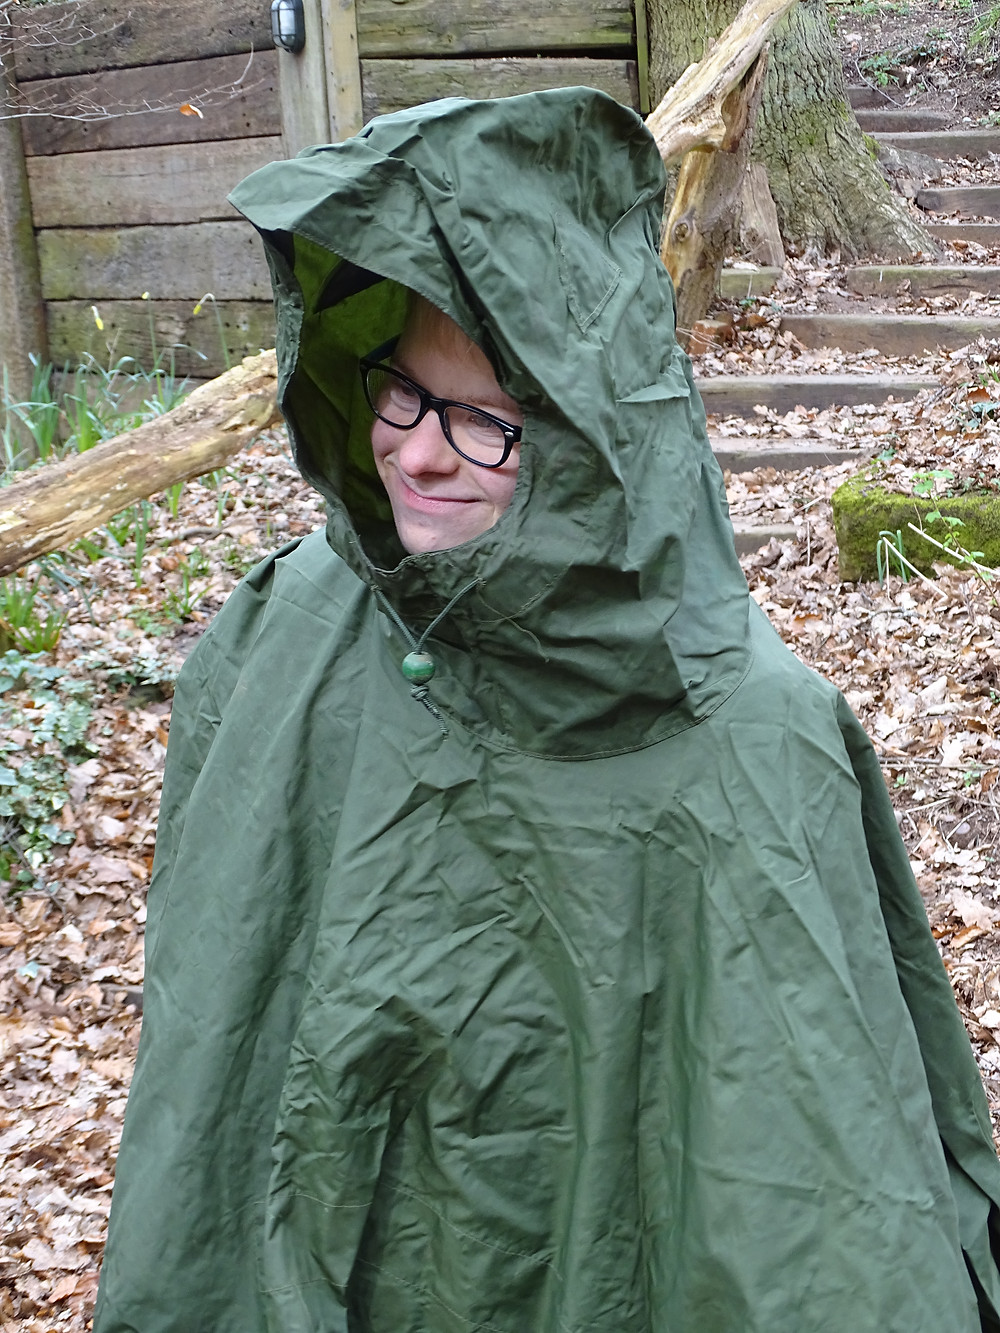 A student from Newark Orchard School dressing up in camouflaged clothing.